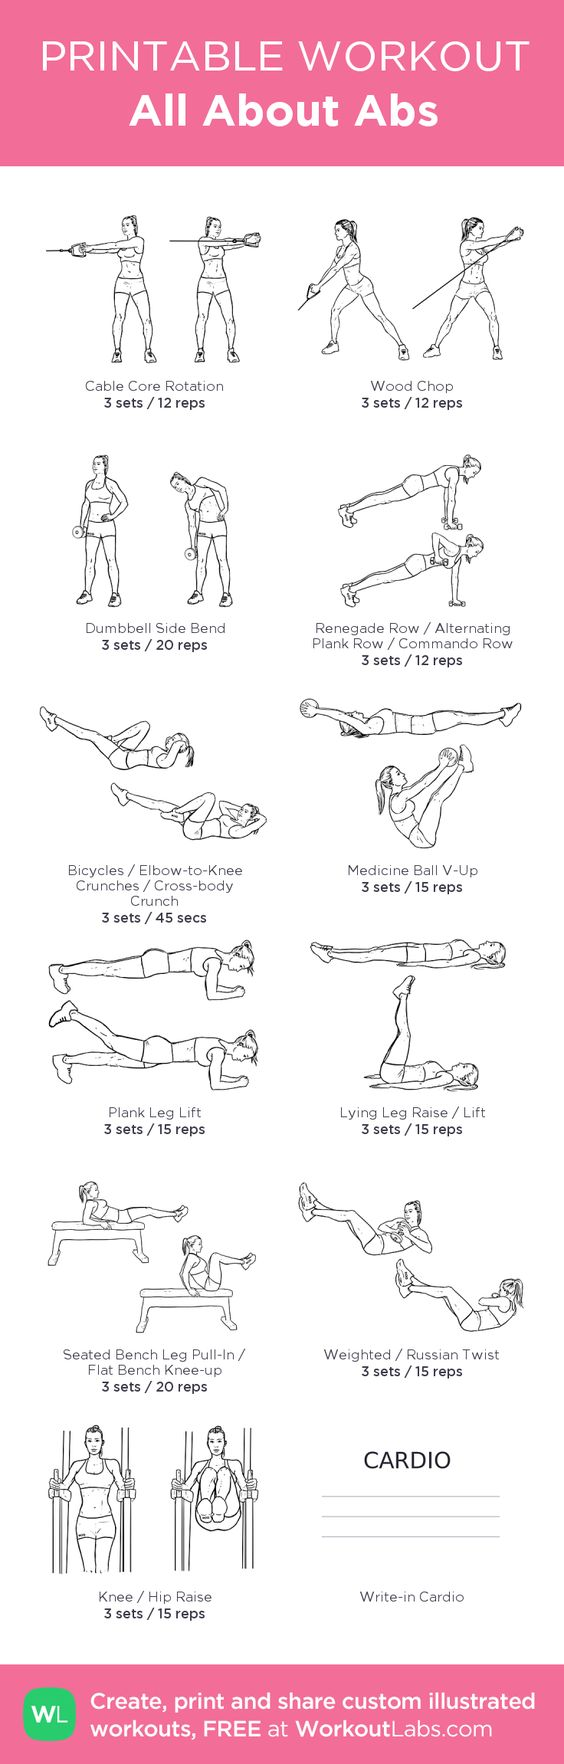 hight resolution of 5 core workouts from pinterest pinterest pinterest workouts core workouts core